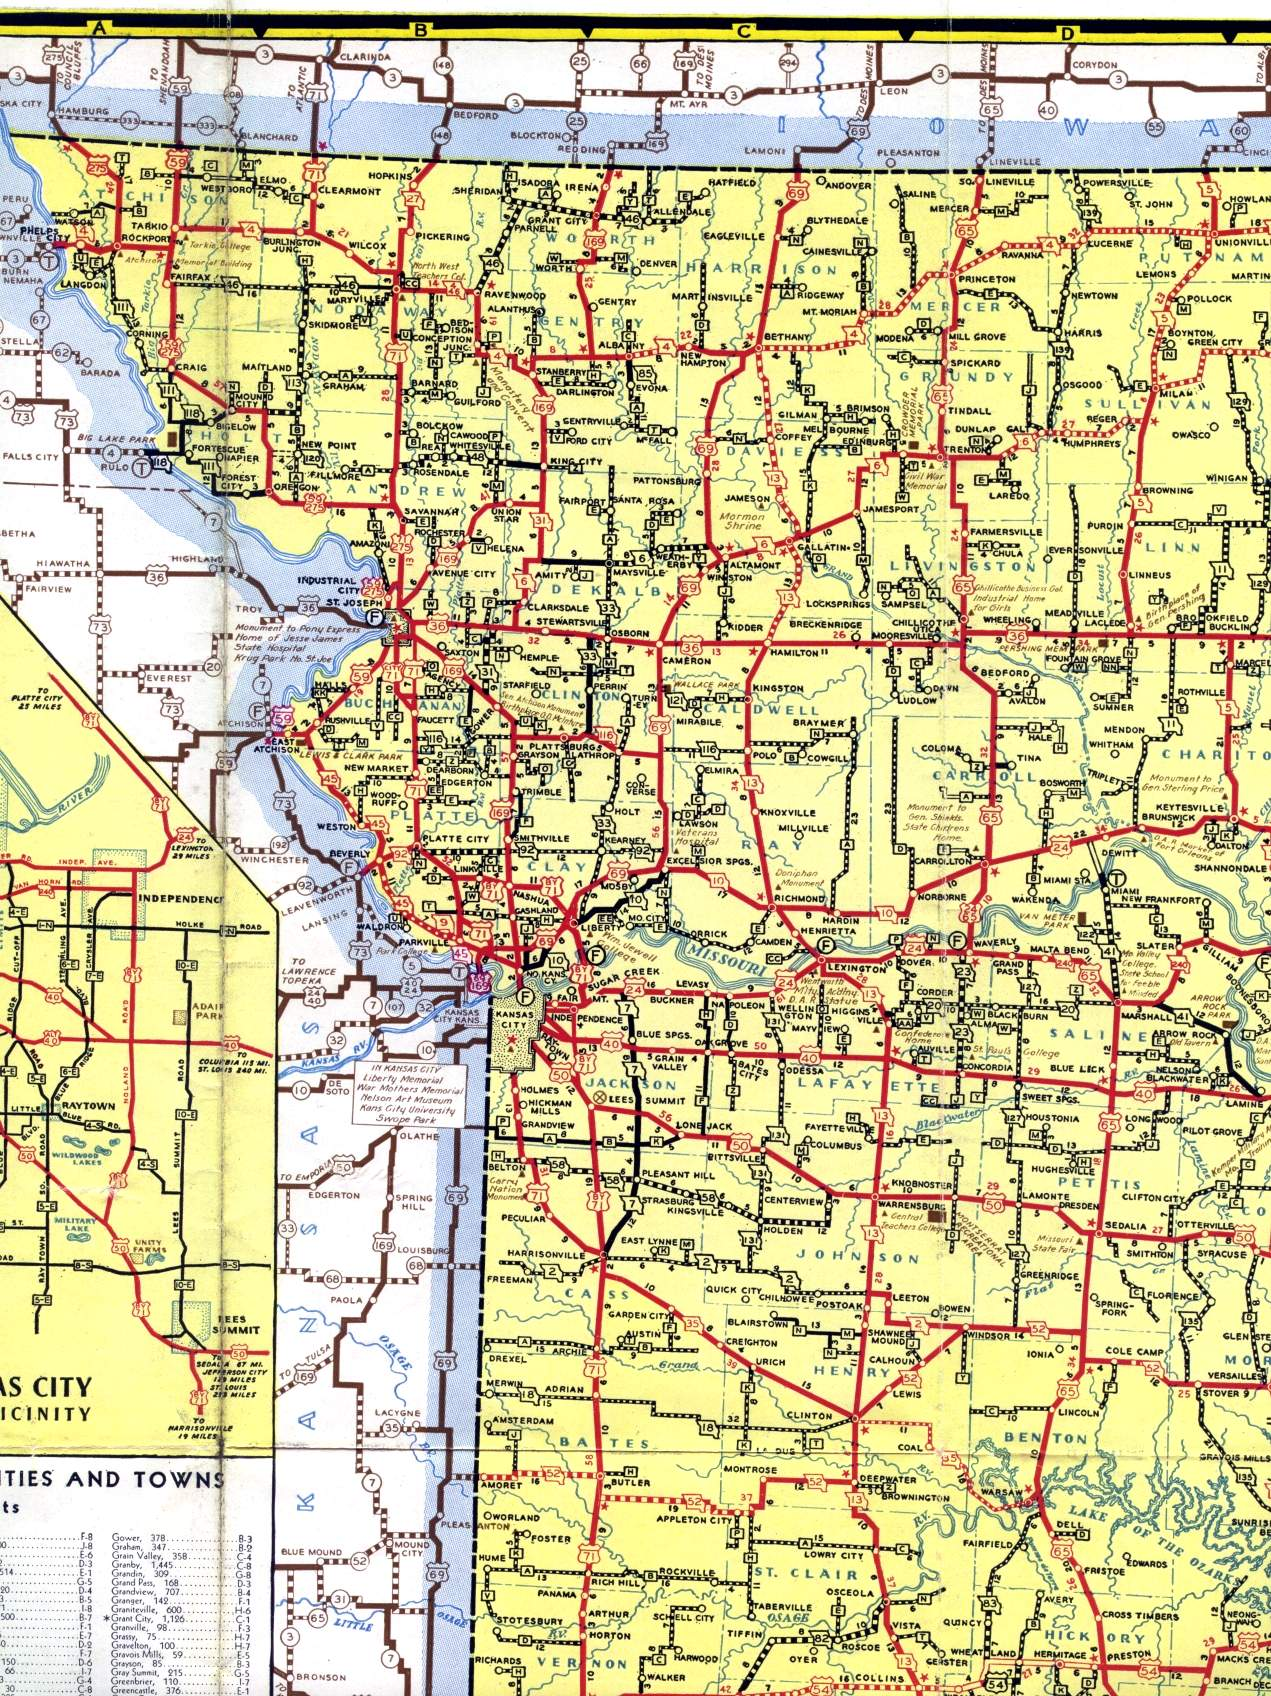 Northwest Missouri Map.Missouri Highways Unofficial Section Of 1940 Official Highway Map